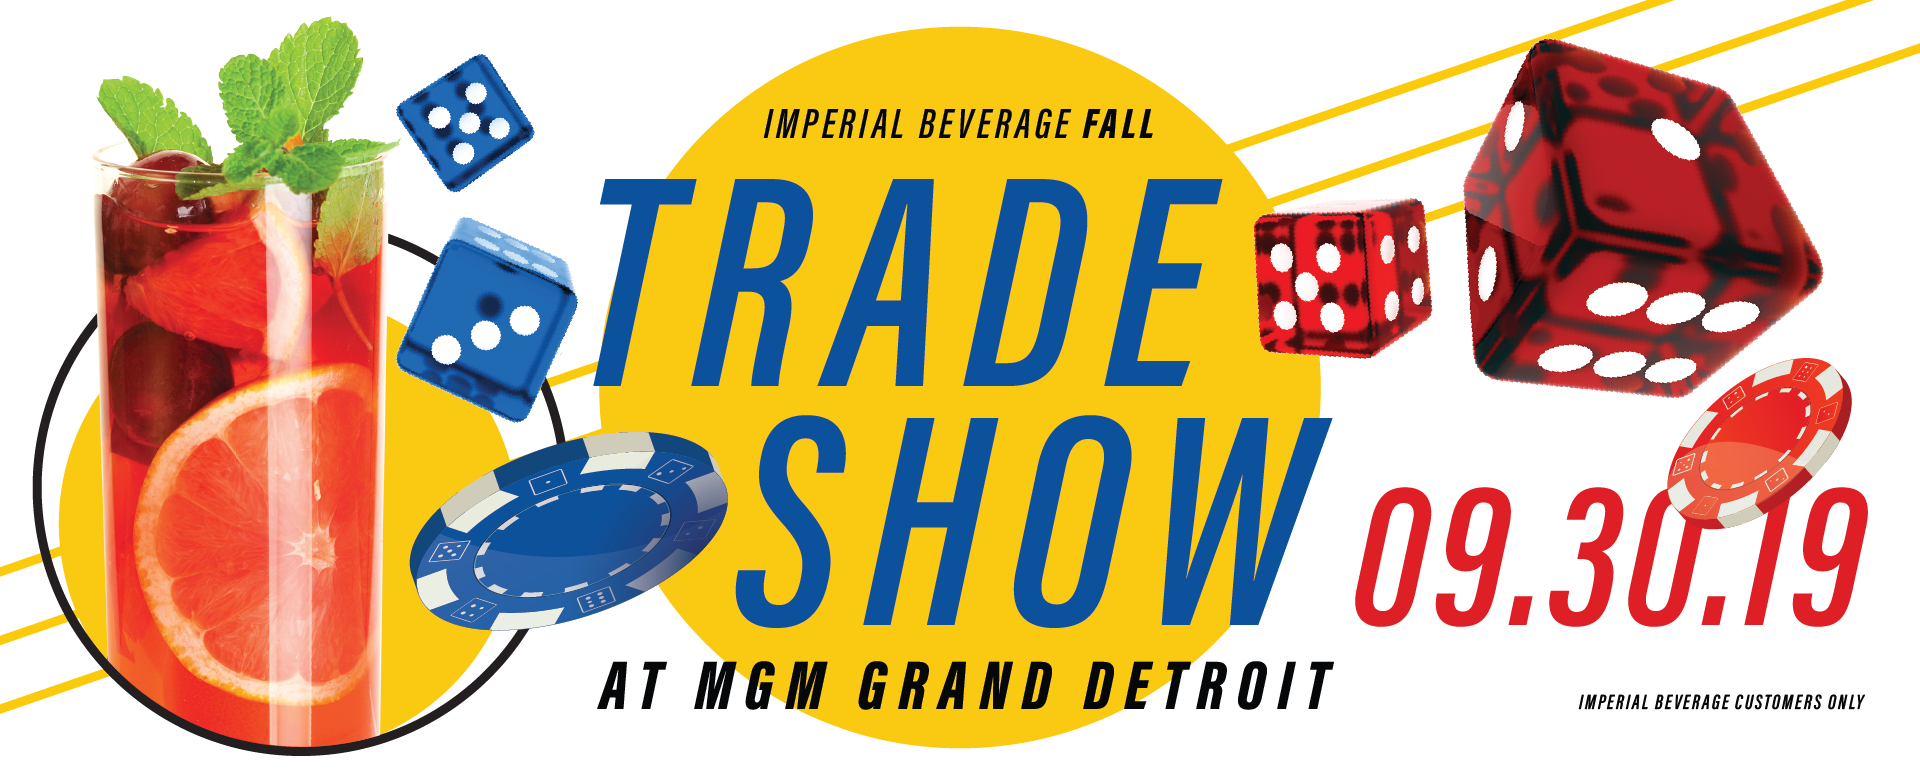 Imperial Beverage Trade Show